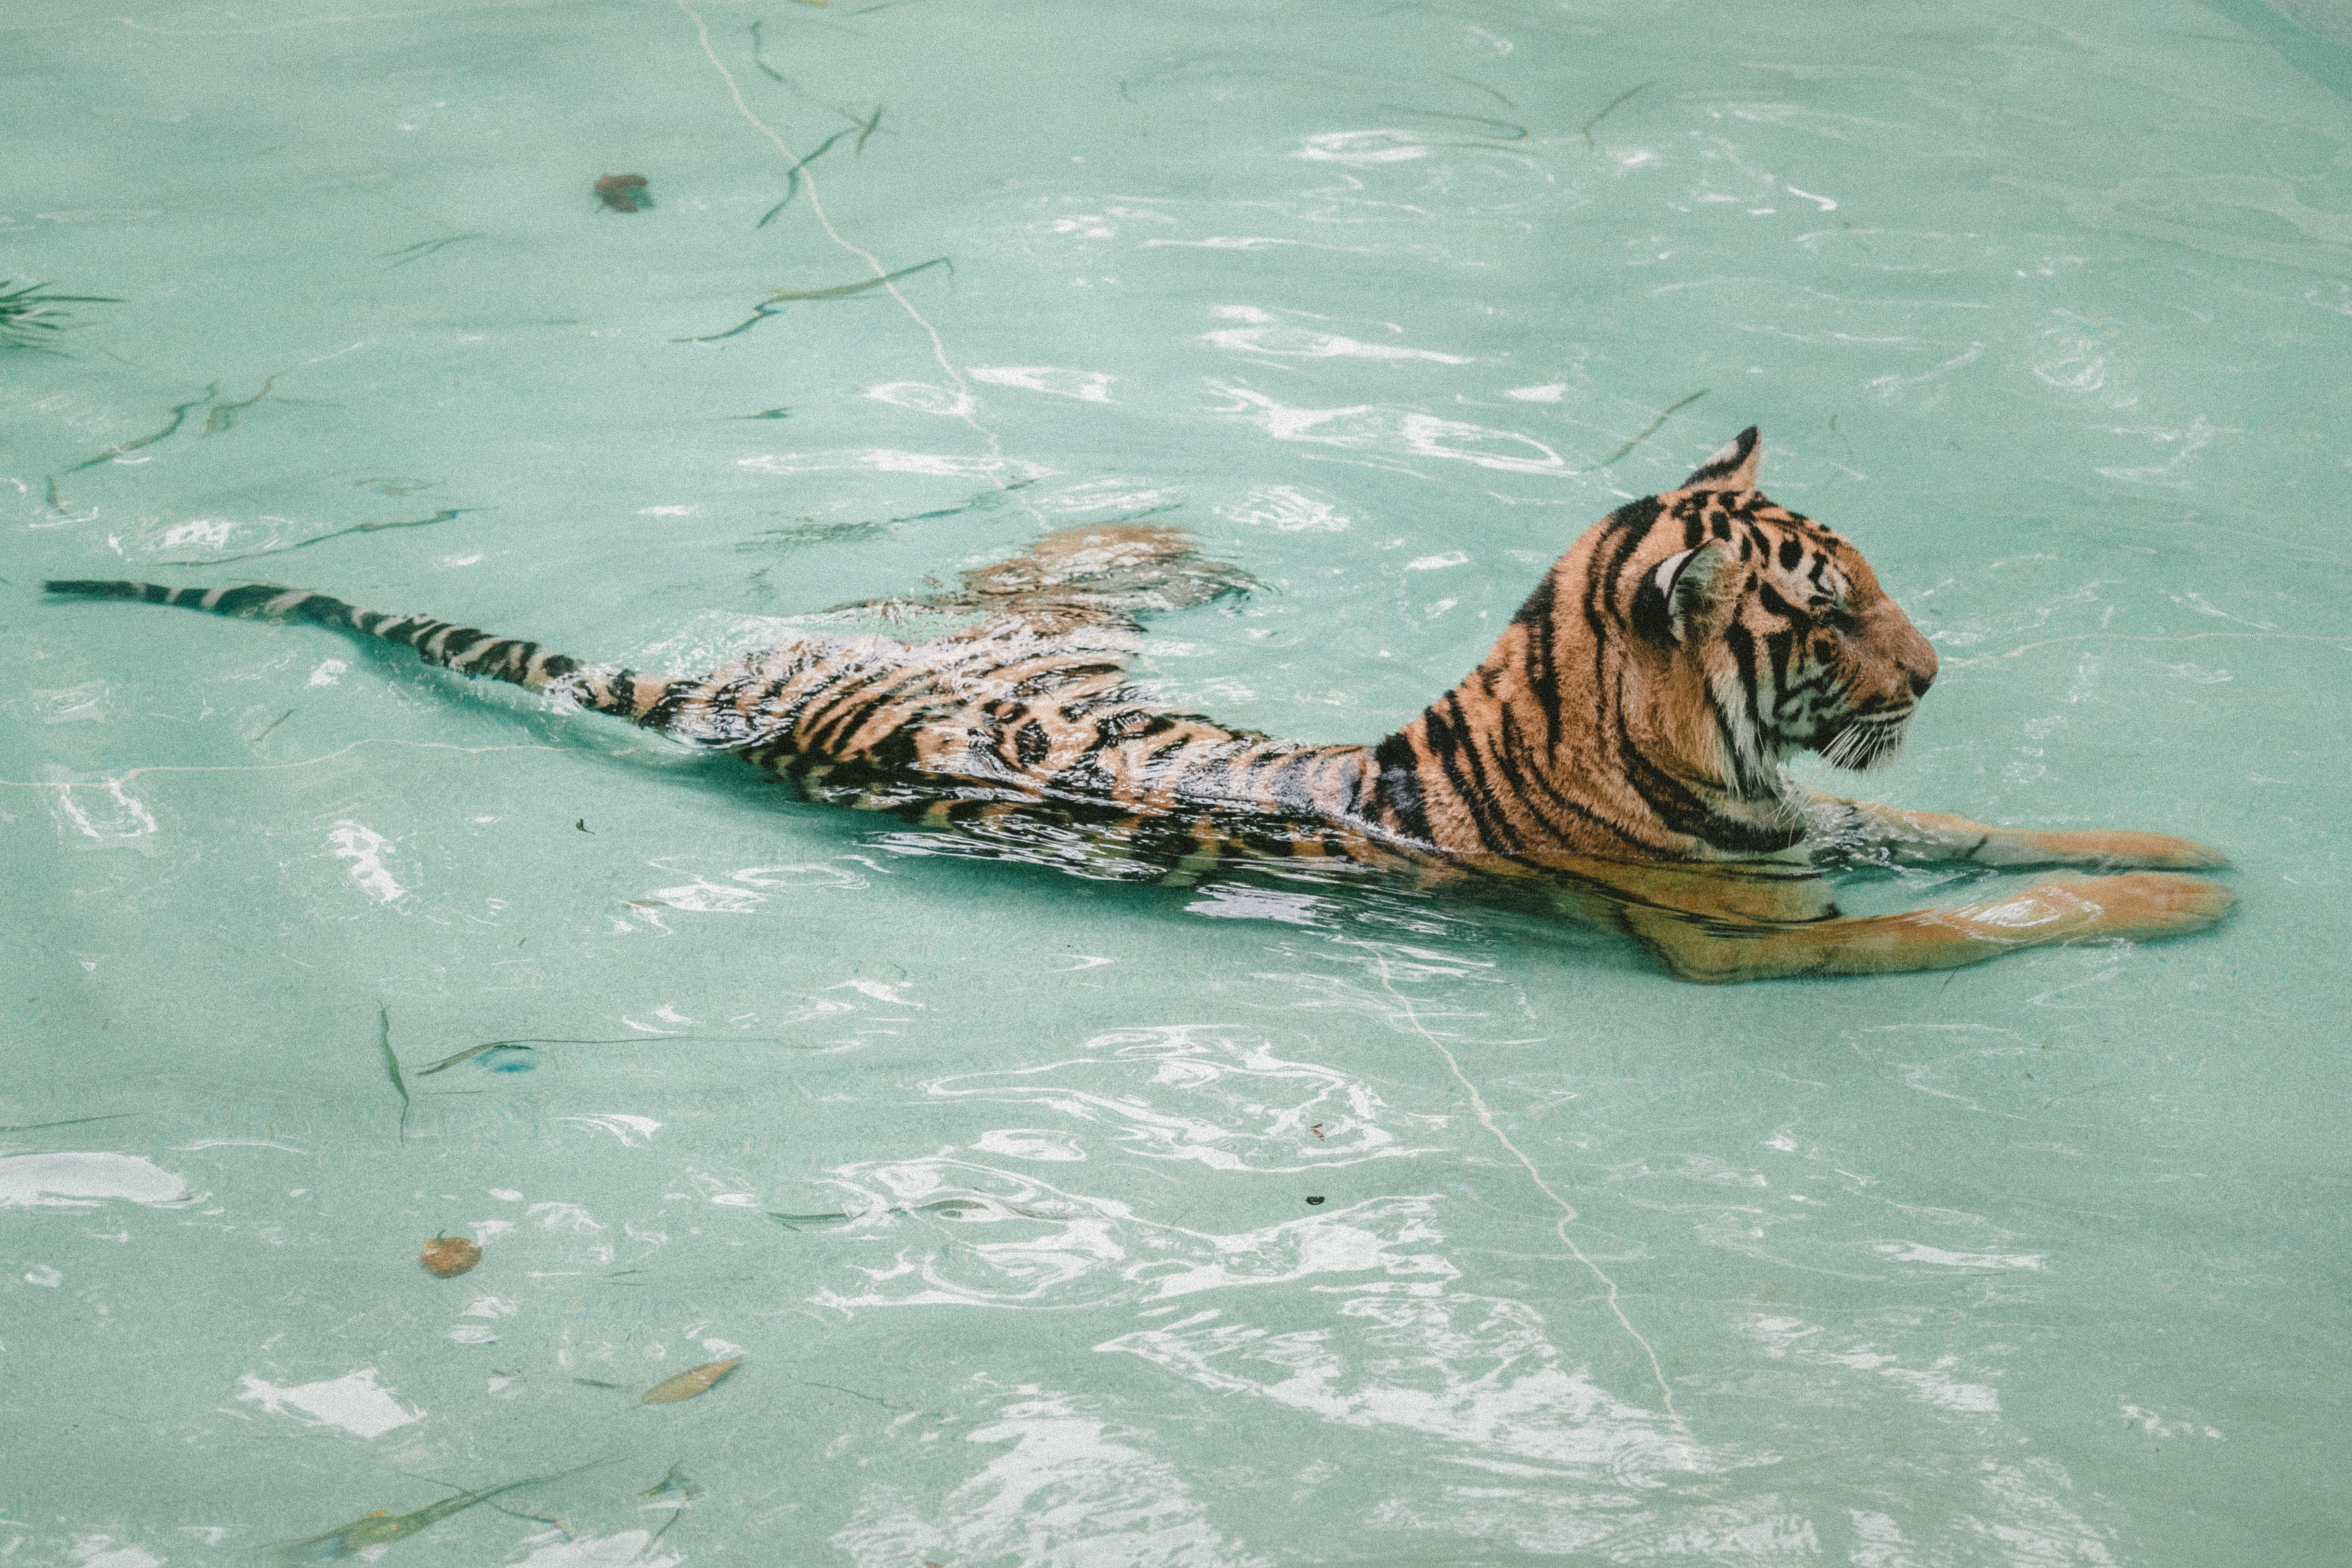 tiger taking bath